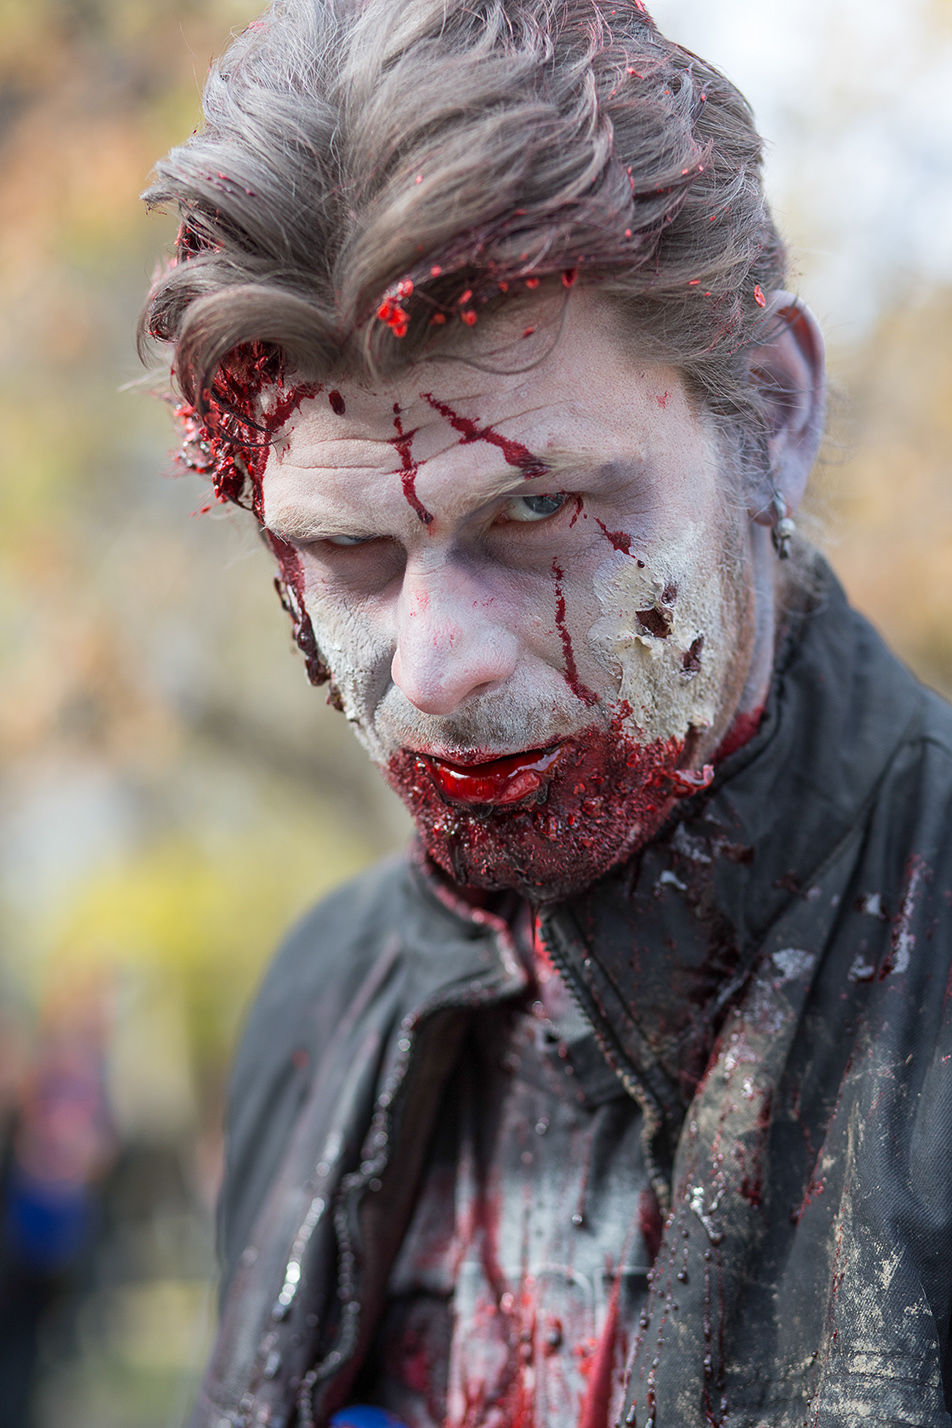 Zombie Apocalypse: Jesse Doherty shows off his make-up before the annual Zombie Walk at Olympic Plaza in Calgary on Saturday, Oct. 12, 2013. Hundreds gathered for the walk, dressed in their scariest zombie costumes to parade down Stephen Ave. (Photo by Jenn Sieppert/The Press)